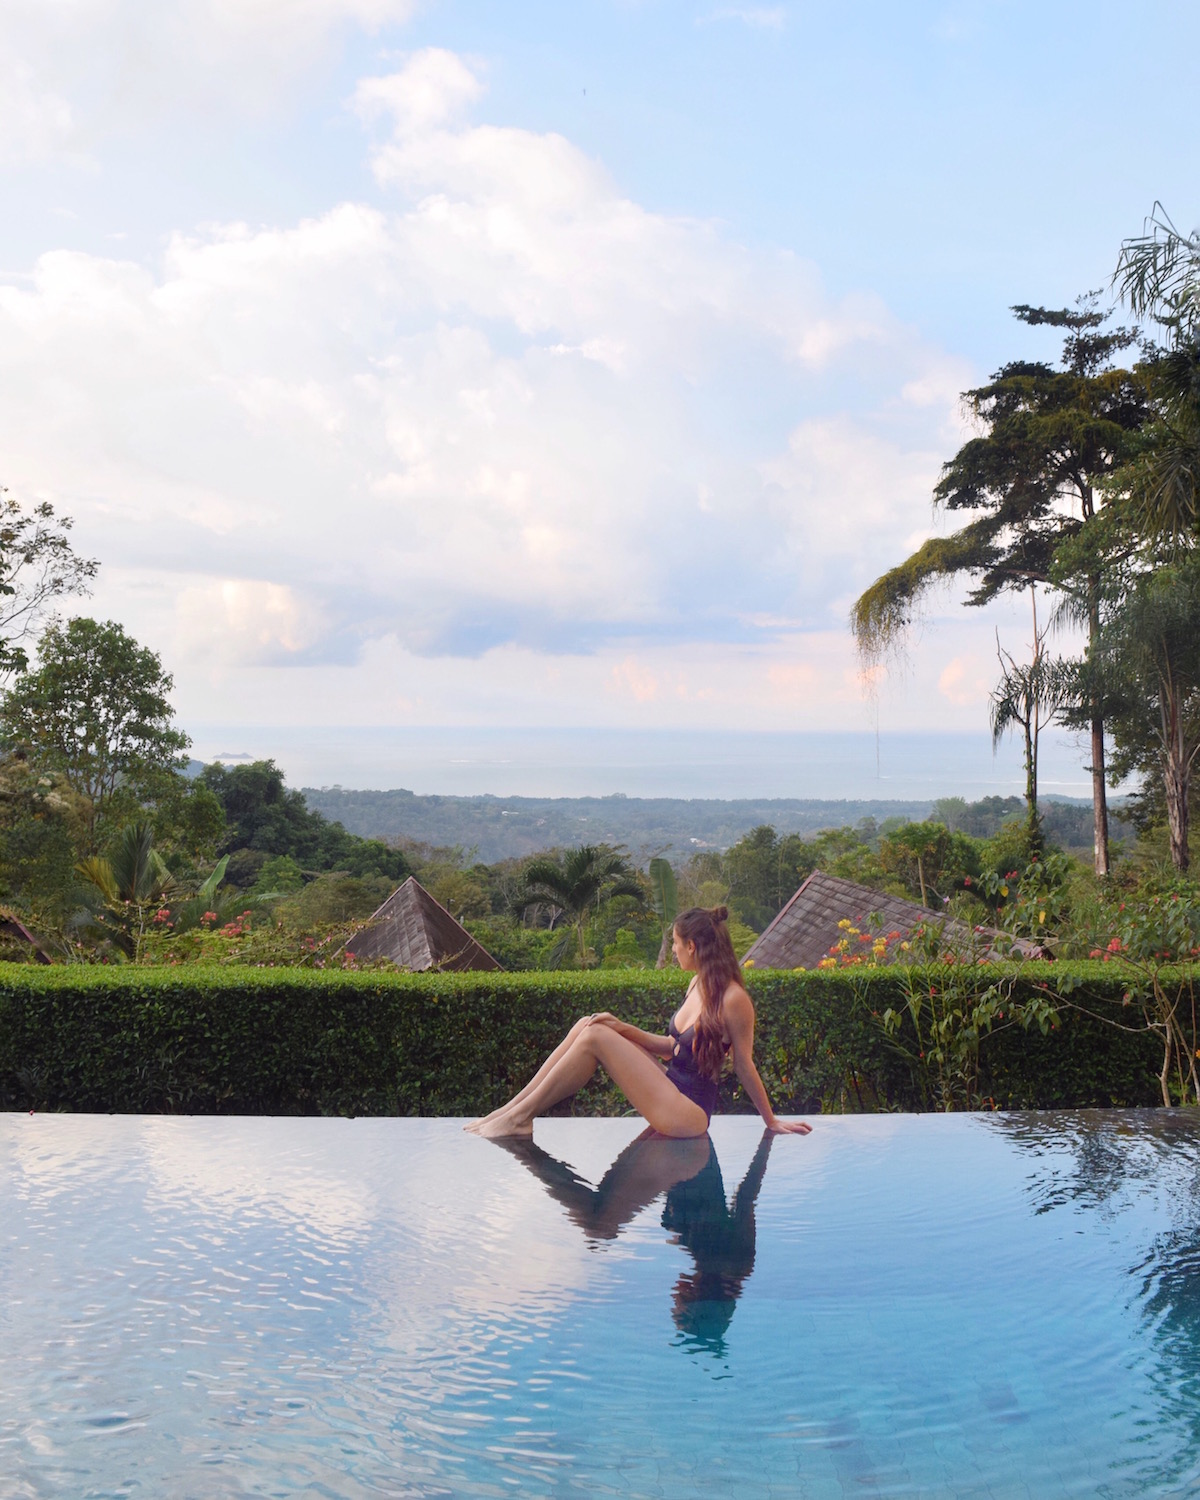 Infinity pool in costa rica.   One of the best things to do in Costa Rica.   Tessa Juliette | Travel Where to Next http://travelwheretonext.com